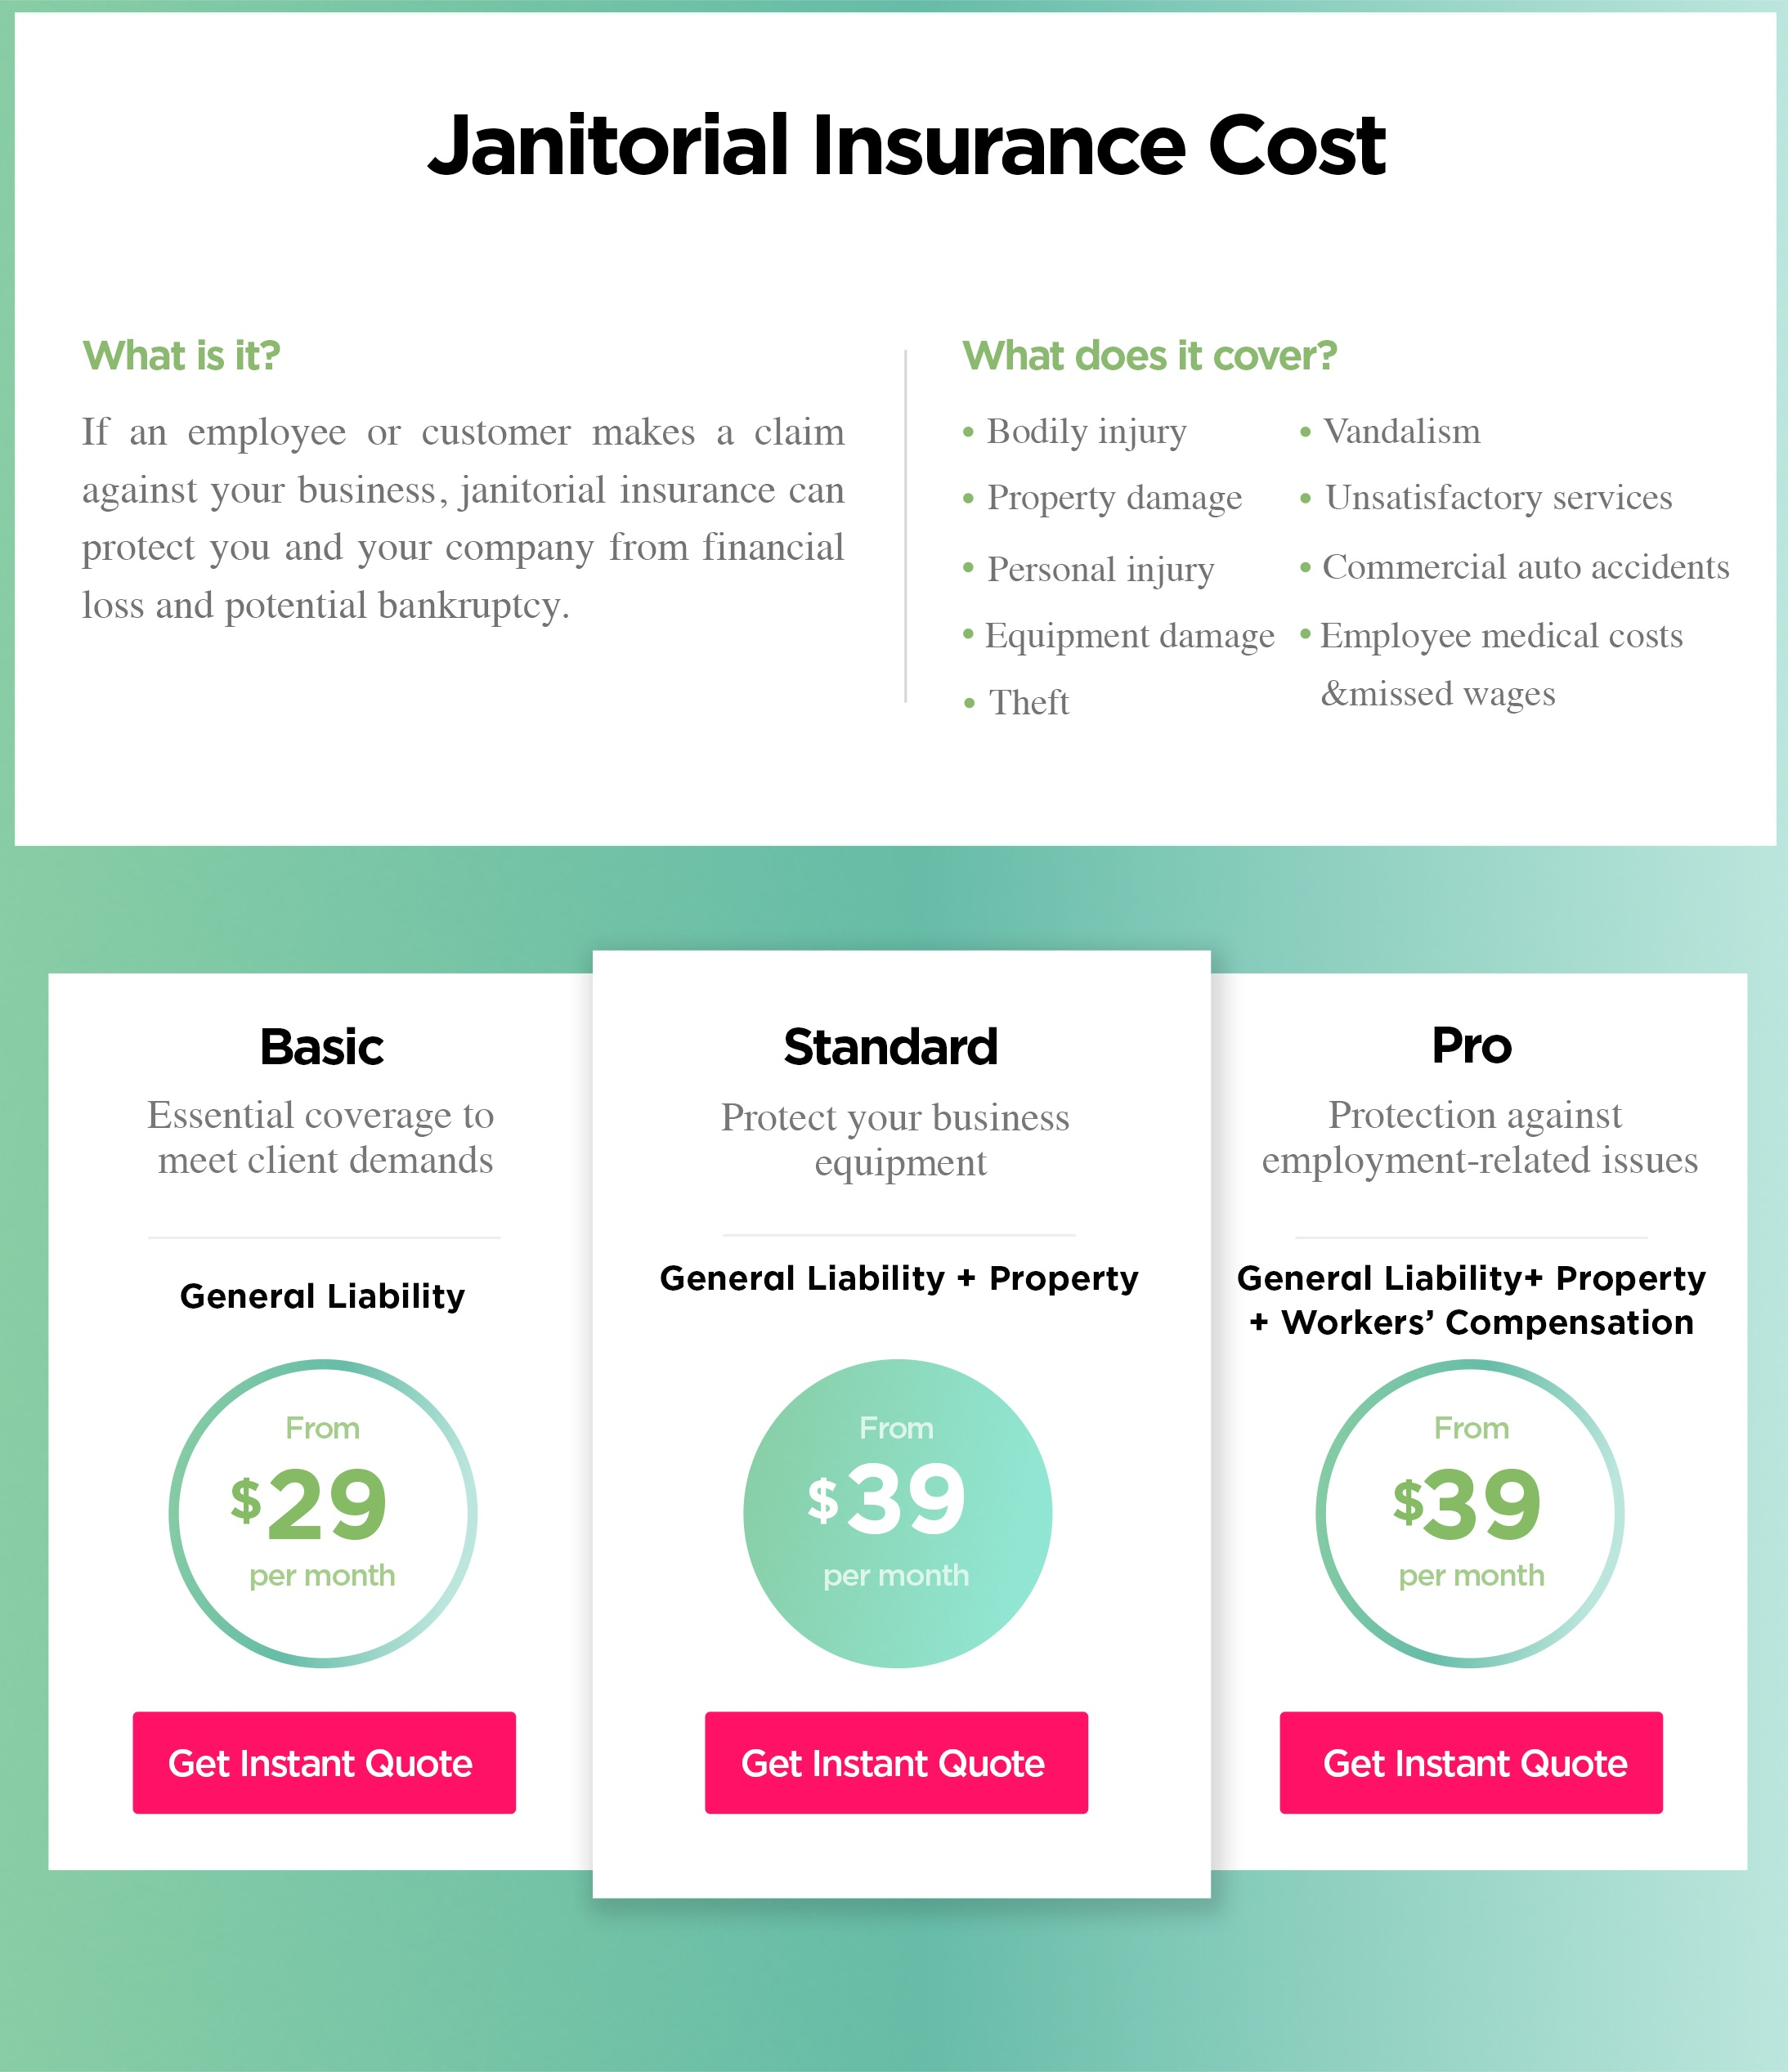 Janitorial Insurance Cost